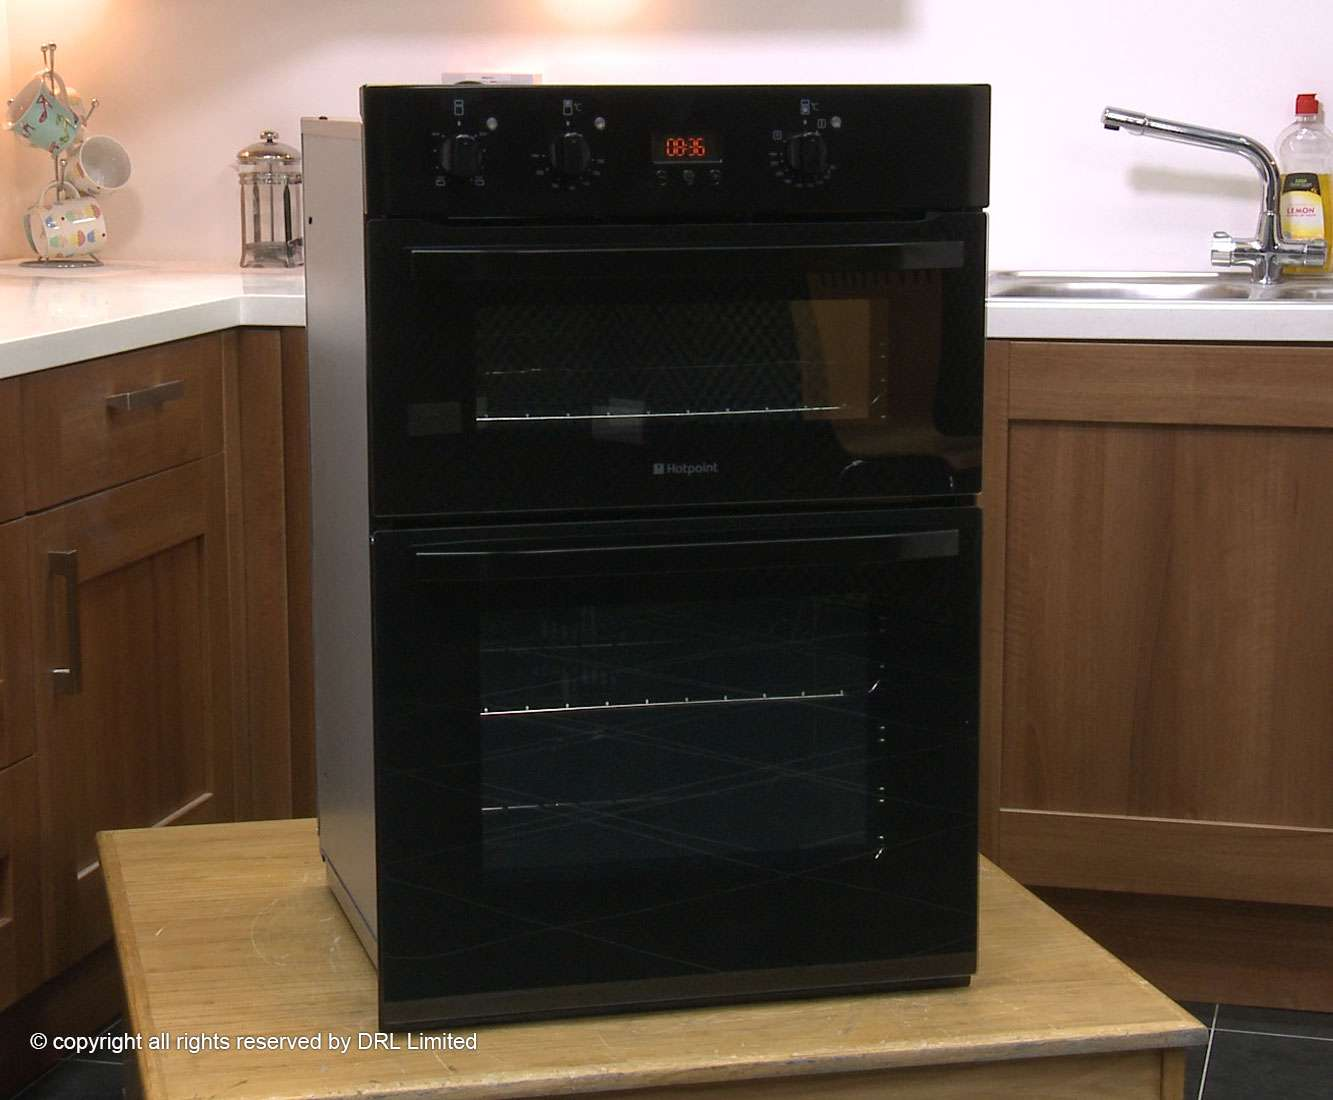 Hotpoint Newstyle Built Electric Double Oven Black